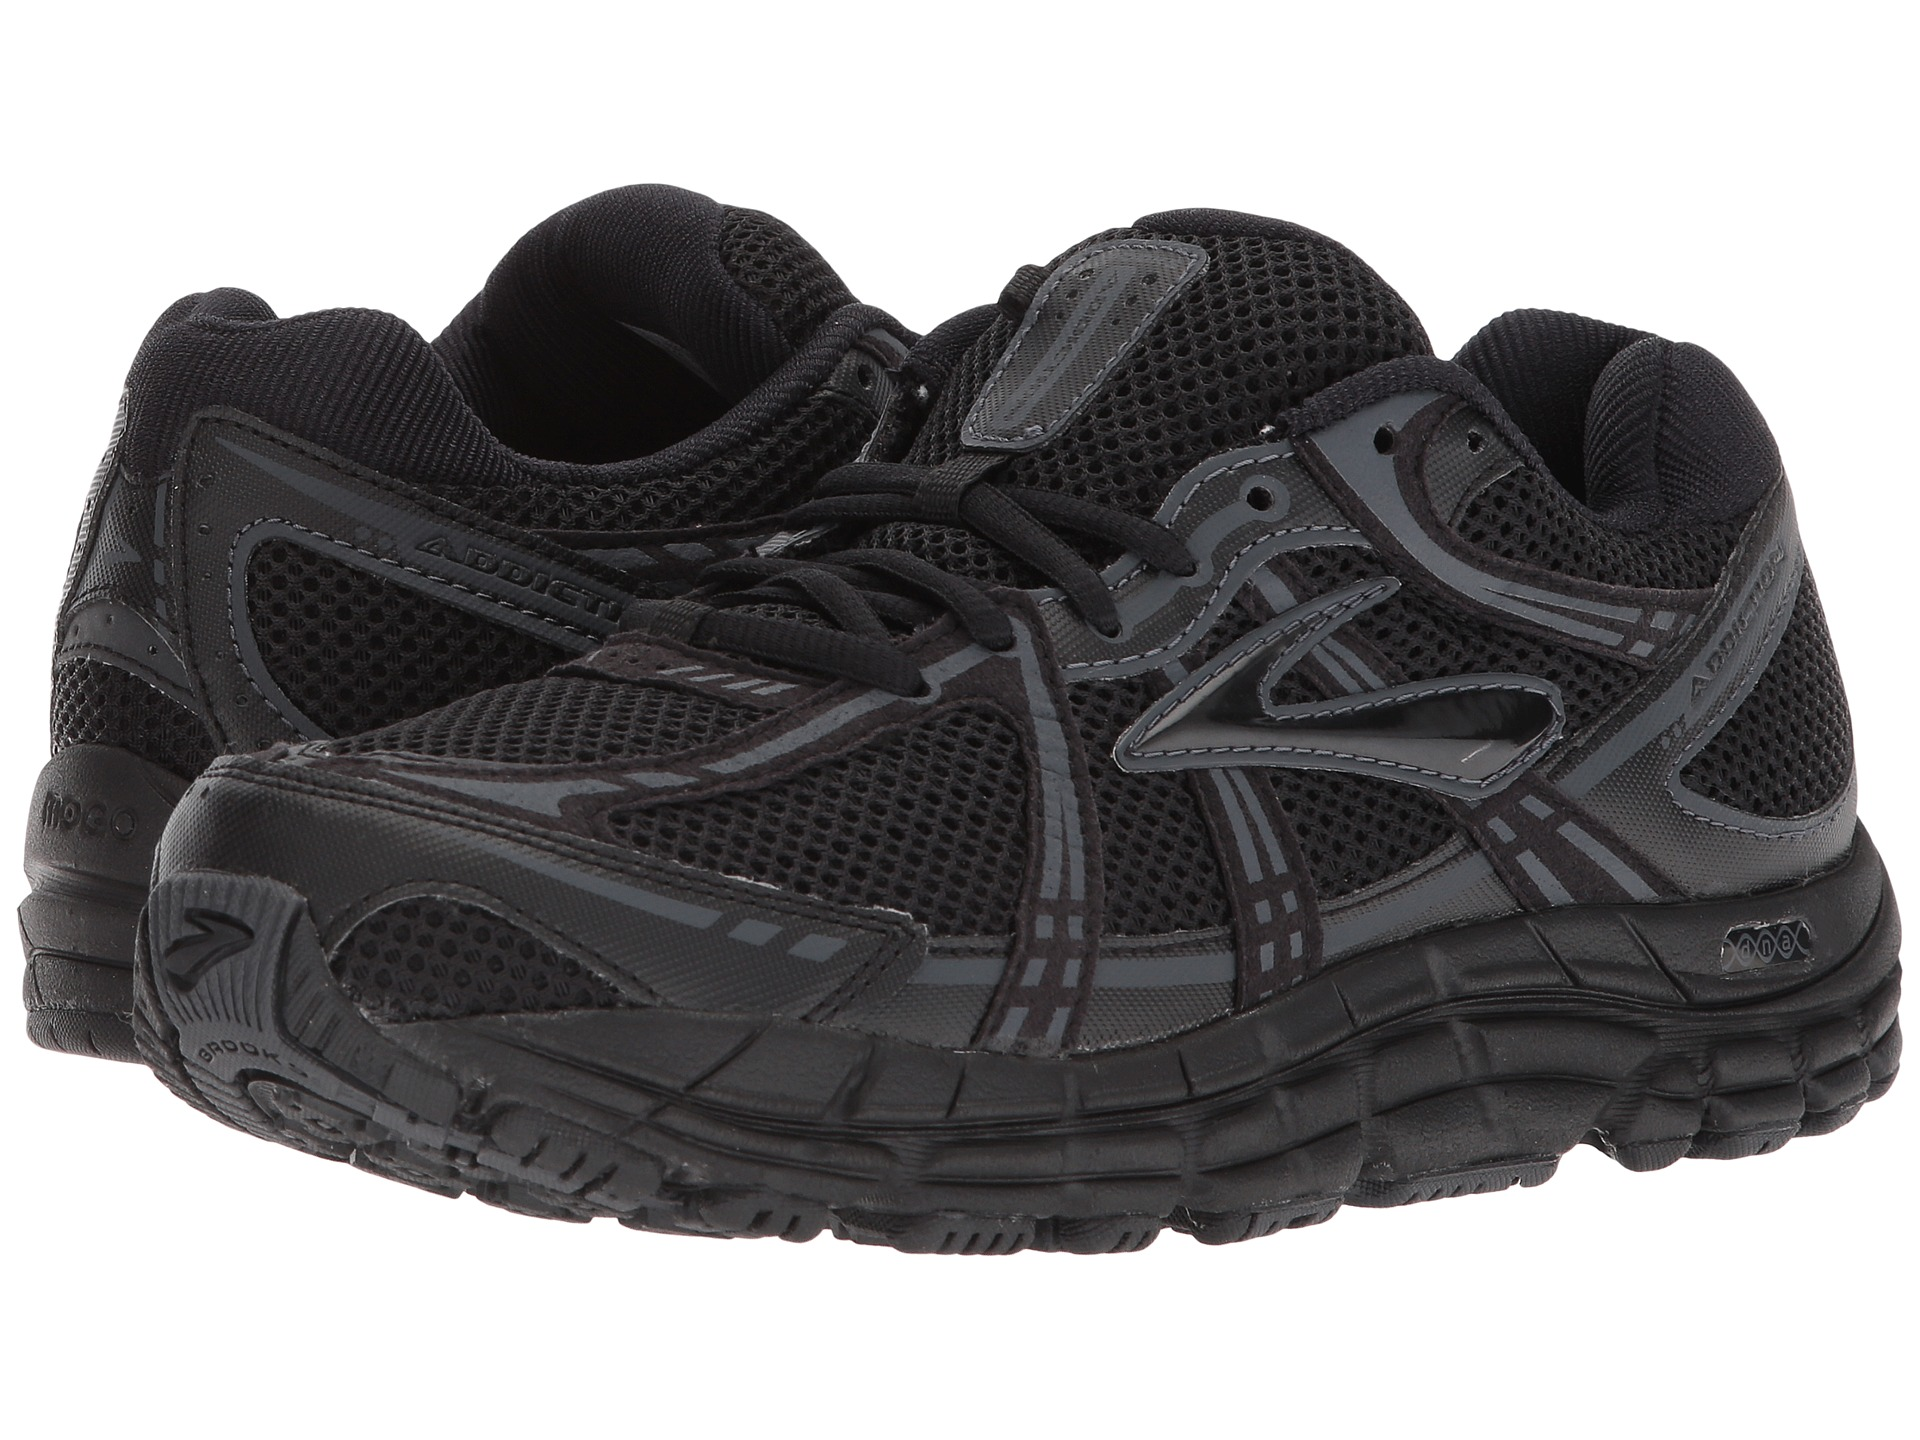 new addiction 10 mens running shoes solid black sz